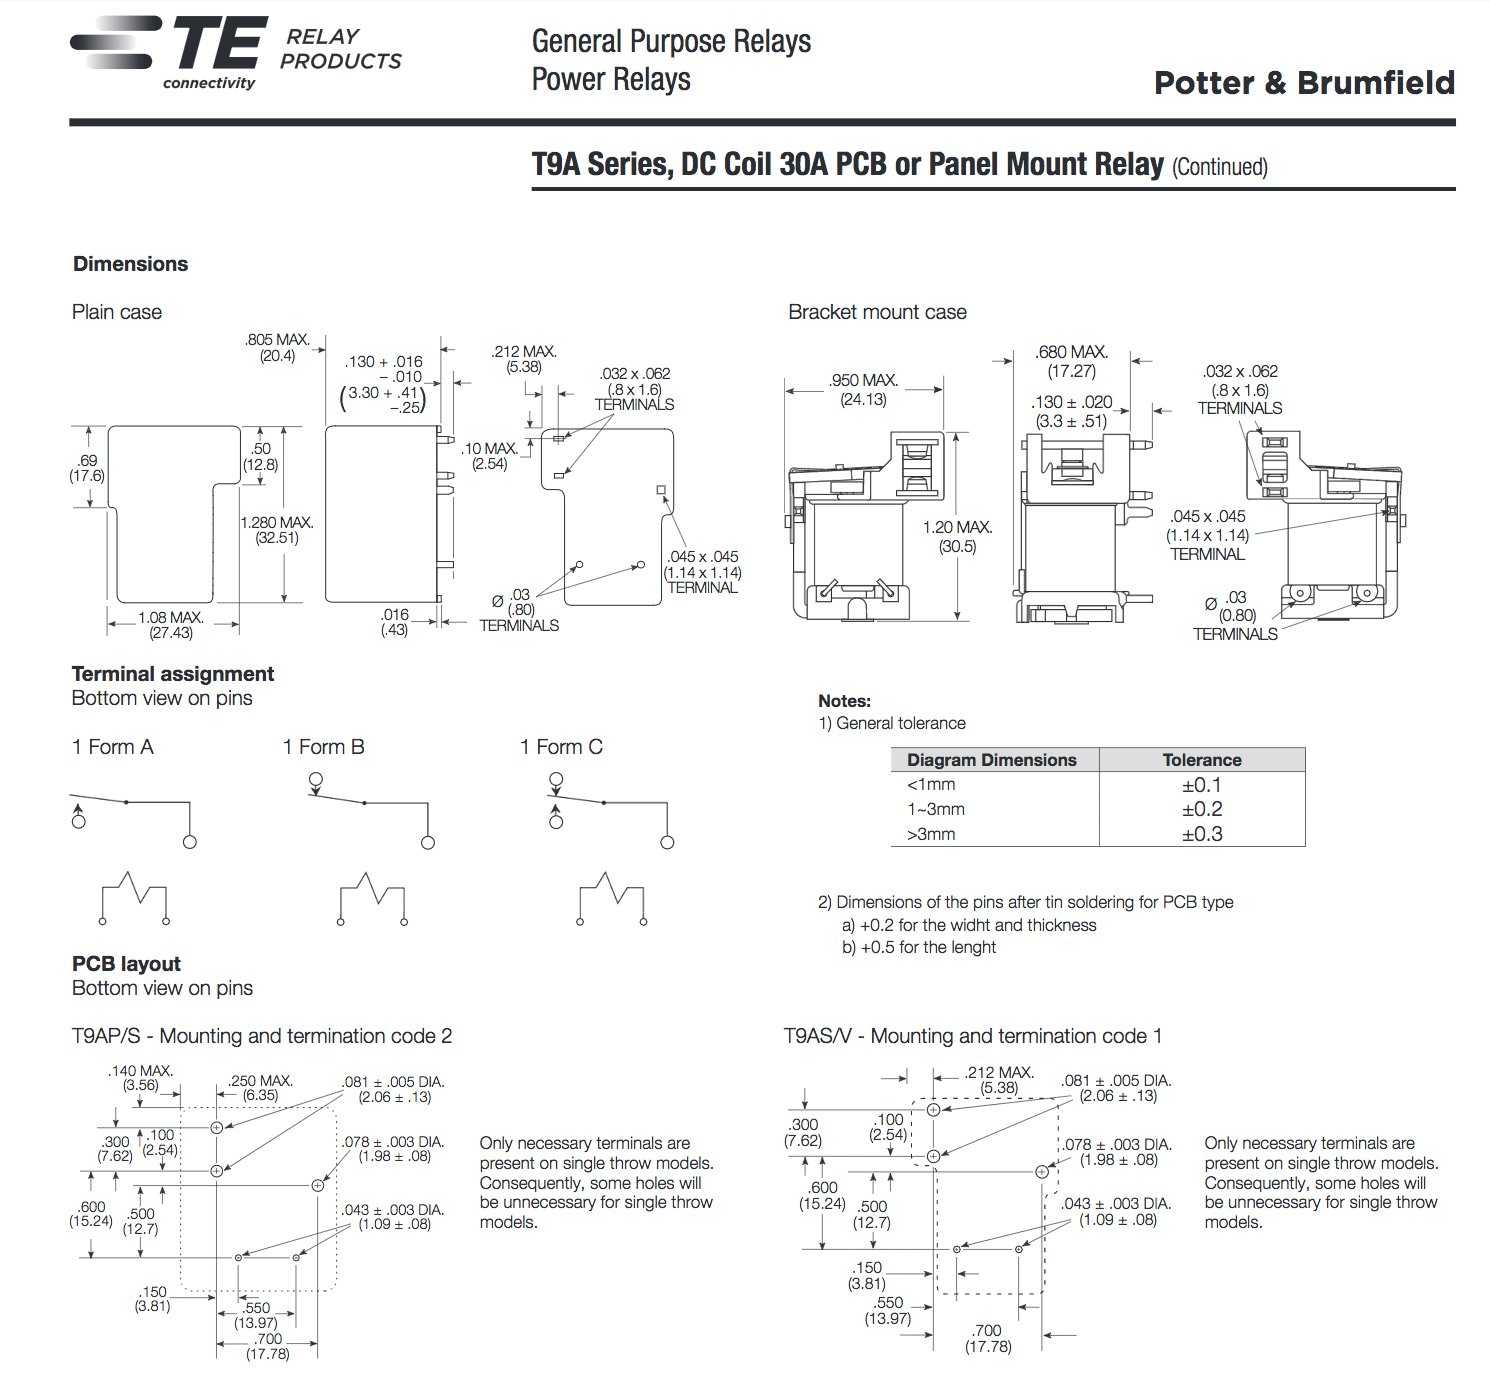 Furnace Wiring Diagram Likewise Industrial Control Wiring Diagrams